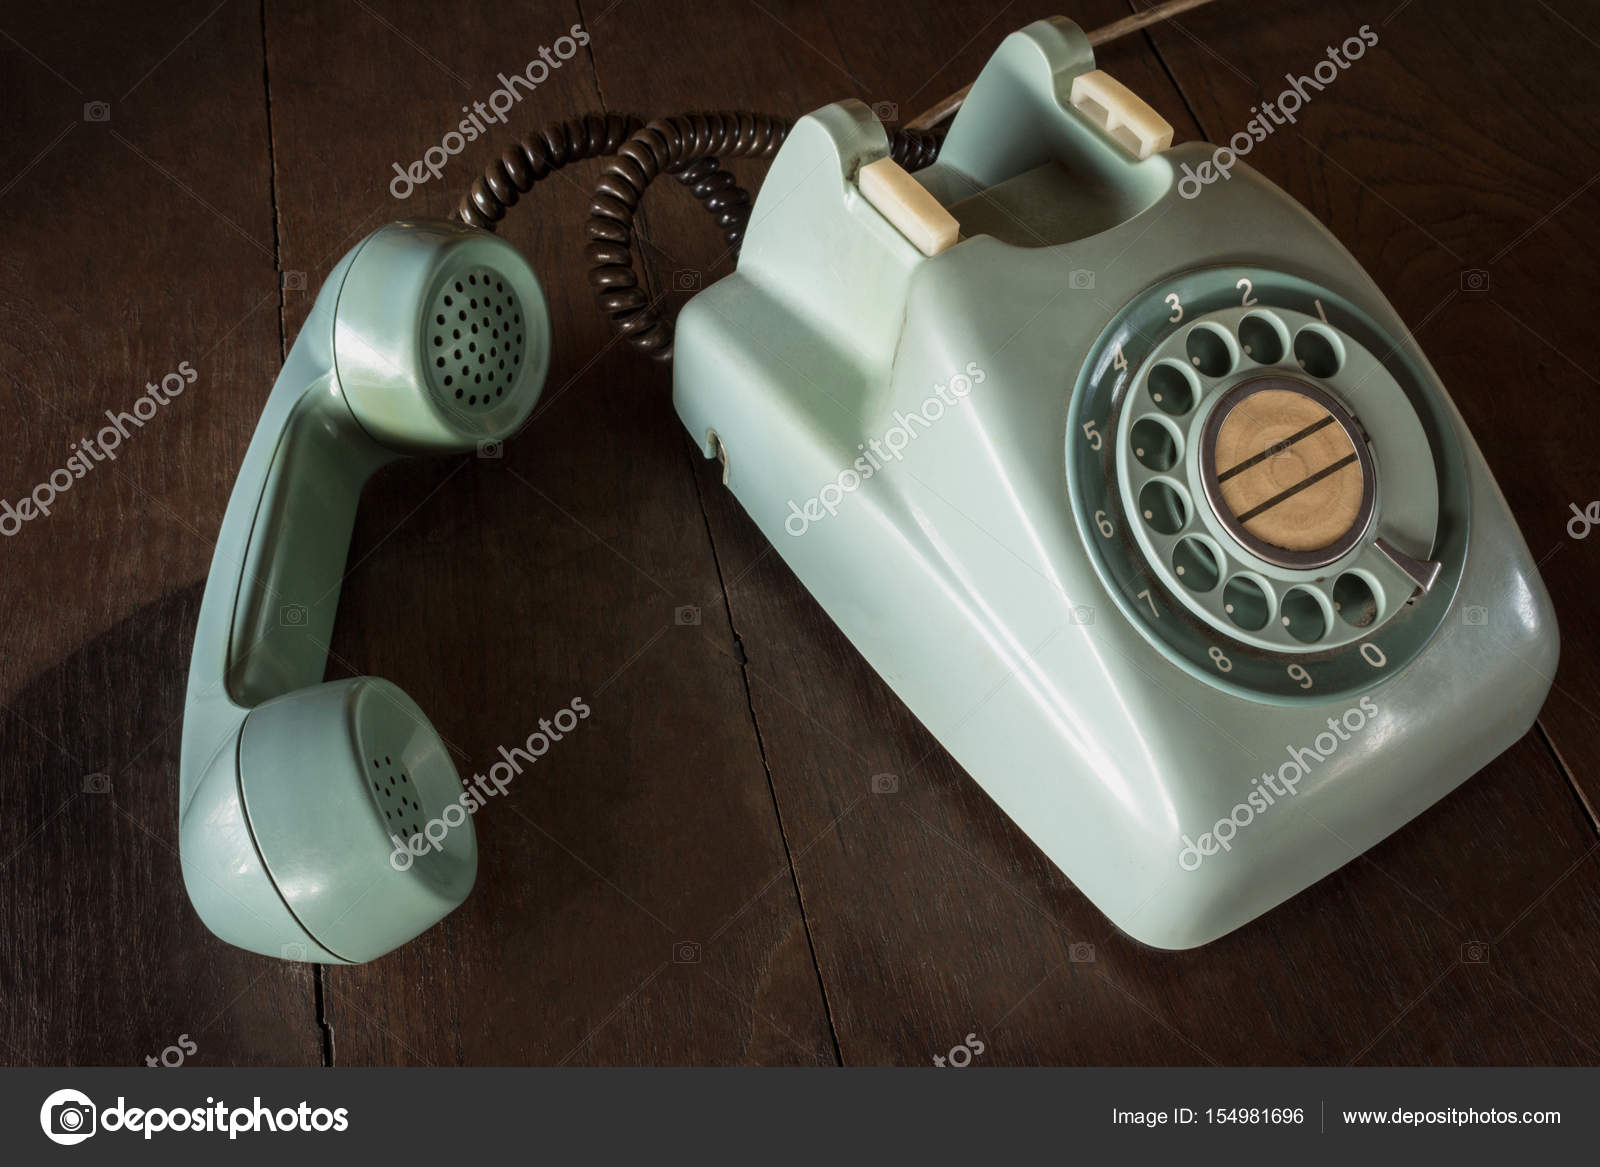 Old Green Vintage Telephone Phone Land Or Landline With Dust On Wooden Retro Desk Copy Space For Text